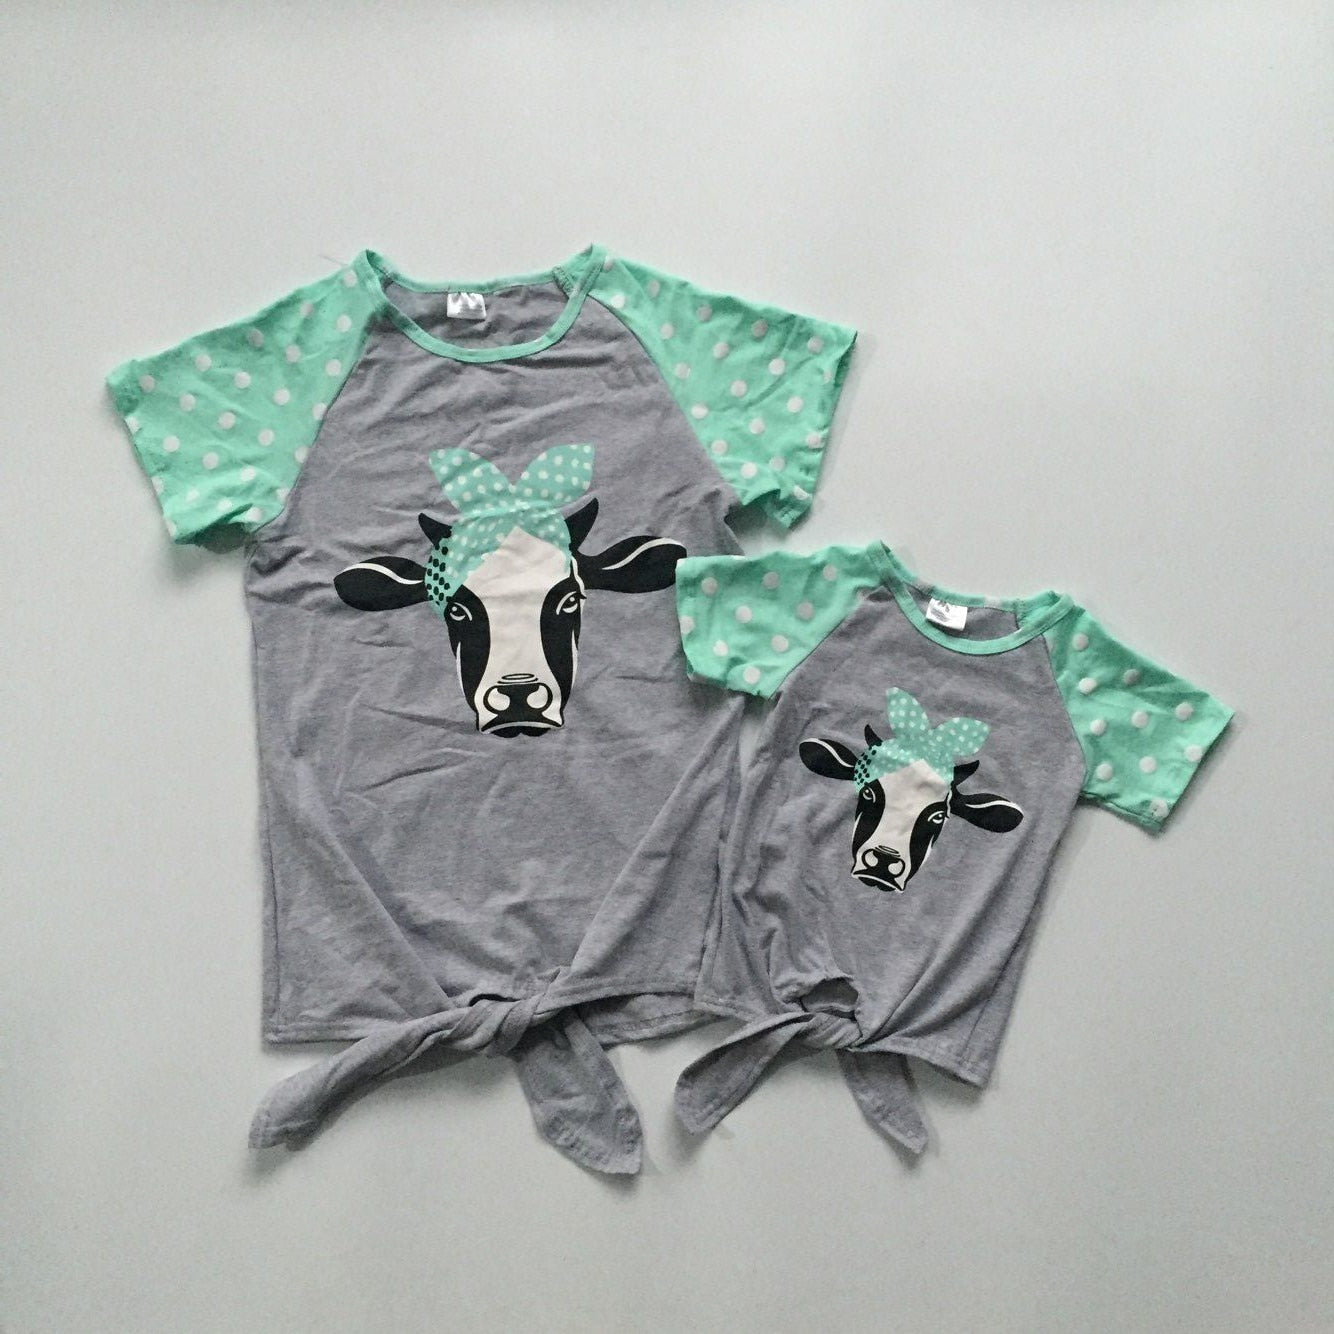 Mommy and baby girls clothes summer T-shirts grey shirts with cow head